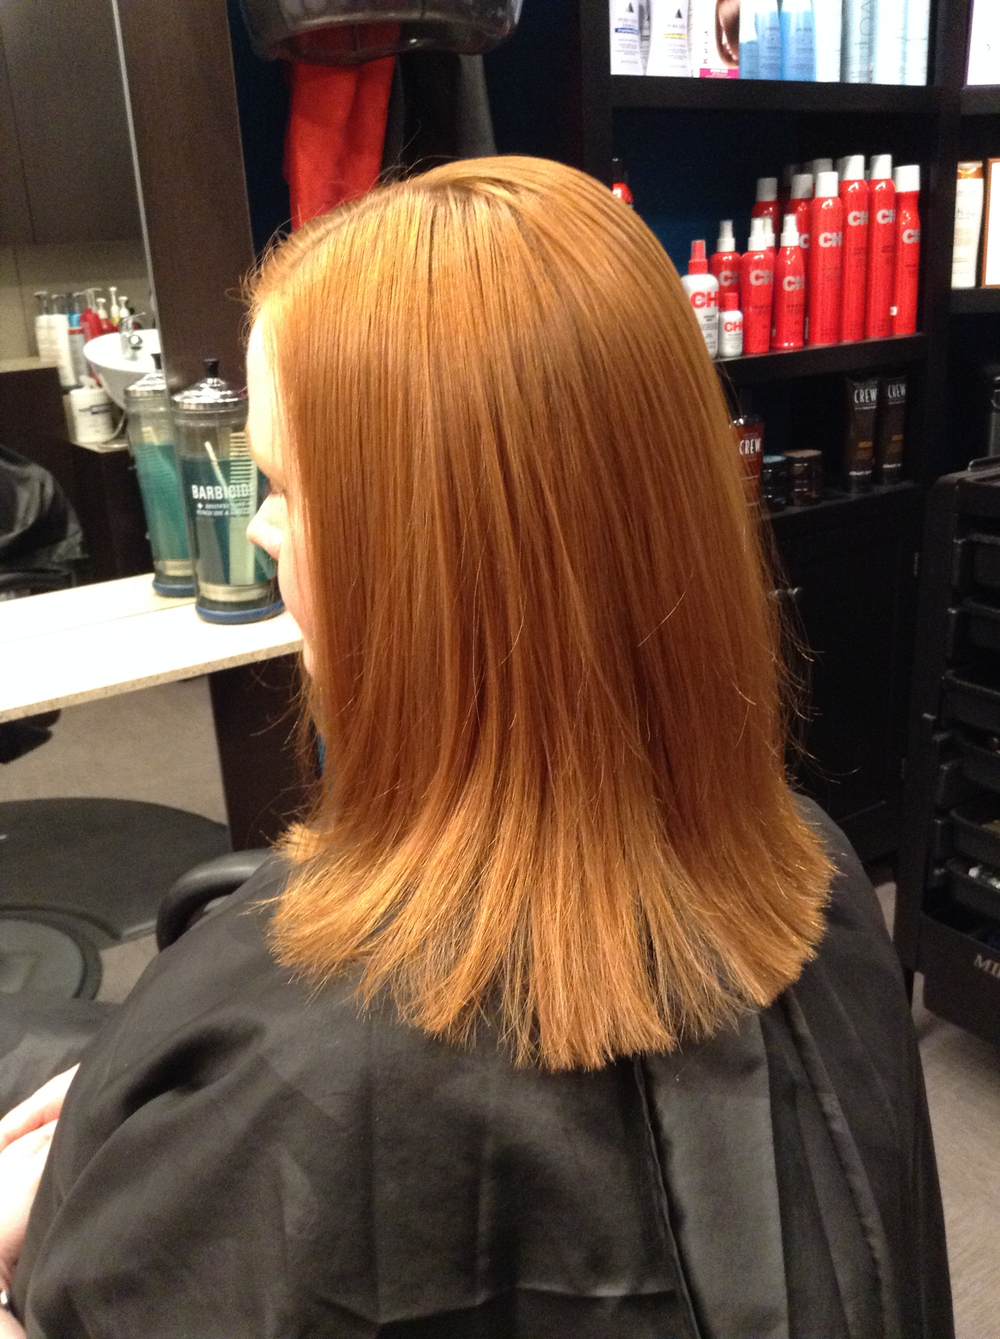 Renee Noice specializes in color and reds of all variations. Redheads are particular about maintaining vibrant haircolor, which makes pre-booking even easier.